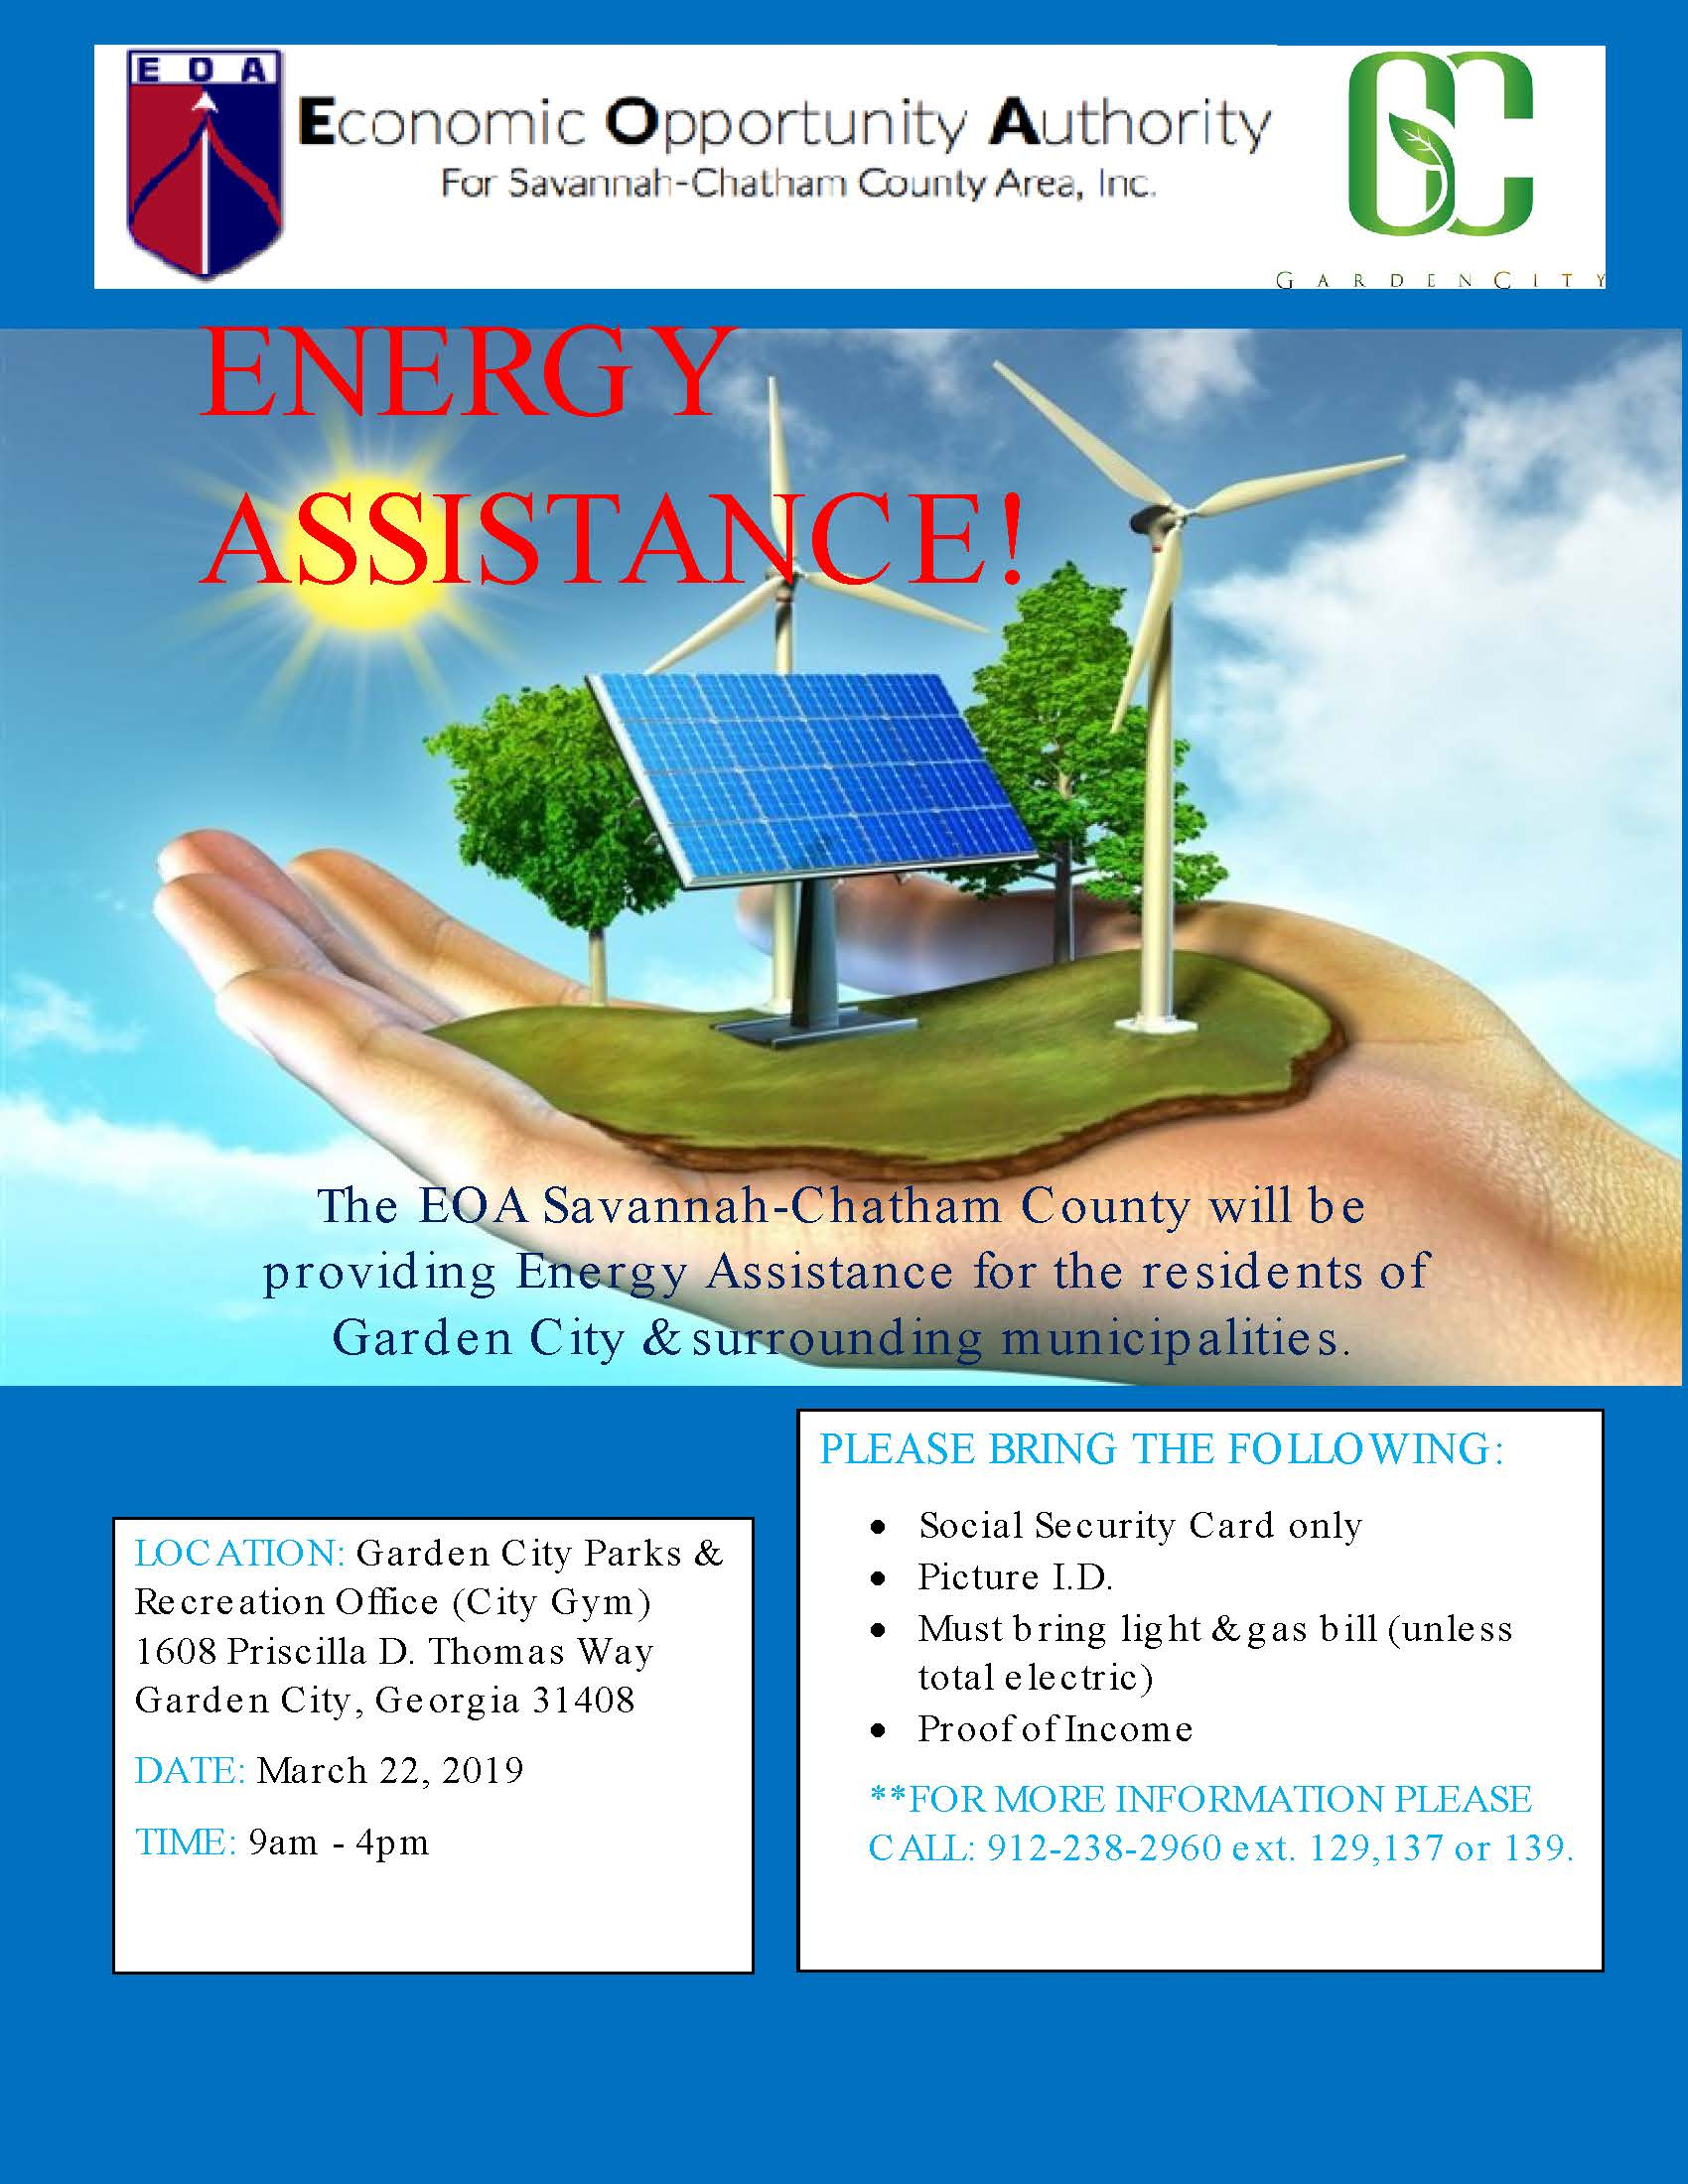 EOA Offers FREE Energy Assistance Day to Garden City Residents!